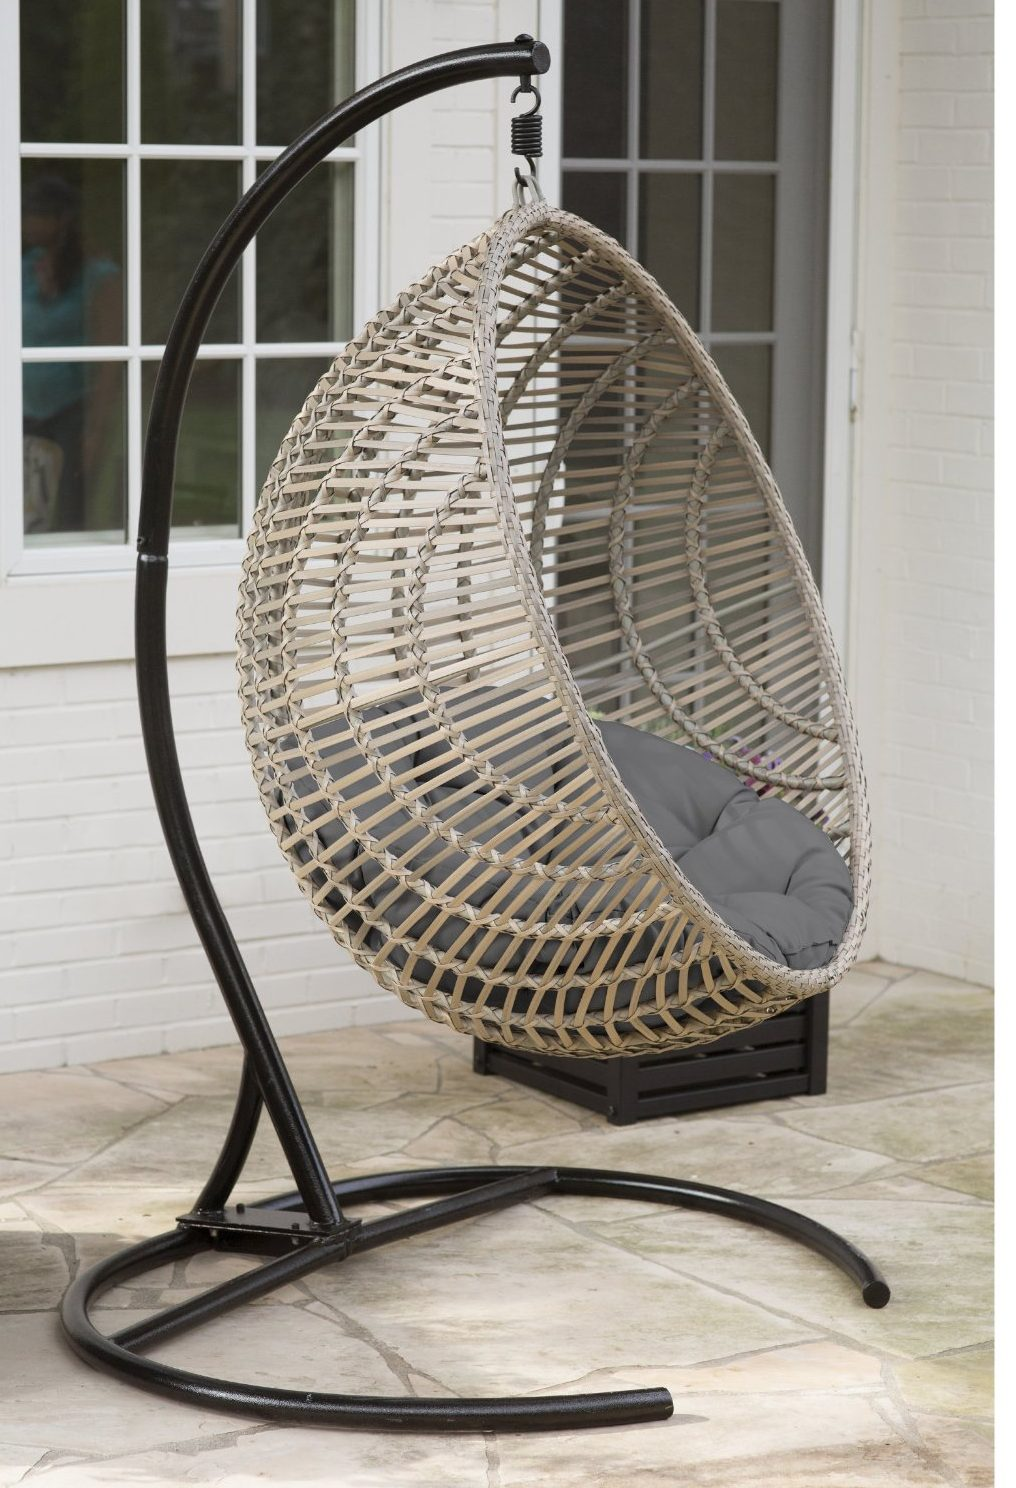 Hanging Outdoor Chairs Review Wicker Hanging Chair With Stand By Island Bay